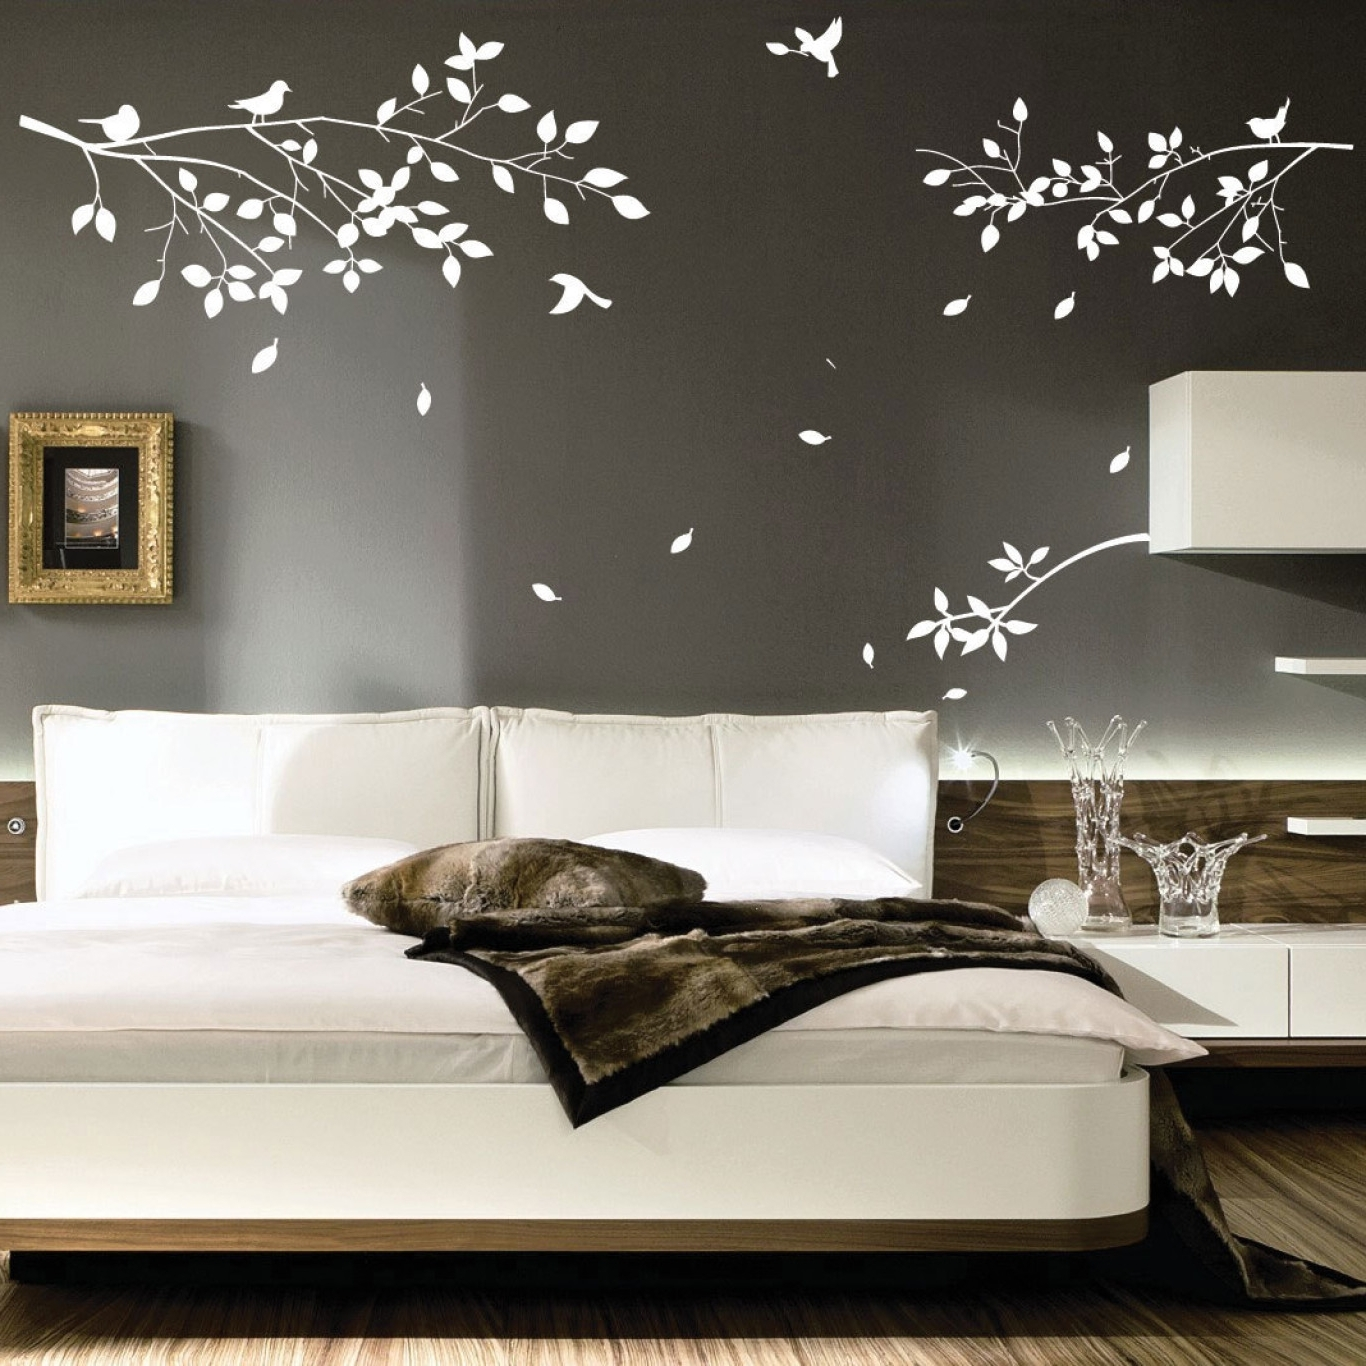 Bedroom Wall Art Decor In Popular Bed Wall Art (View 6 of 15)